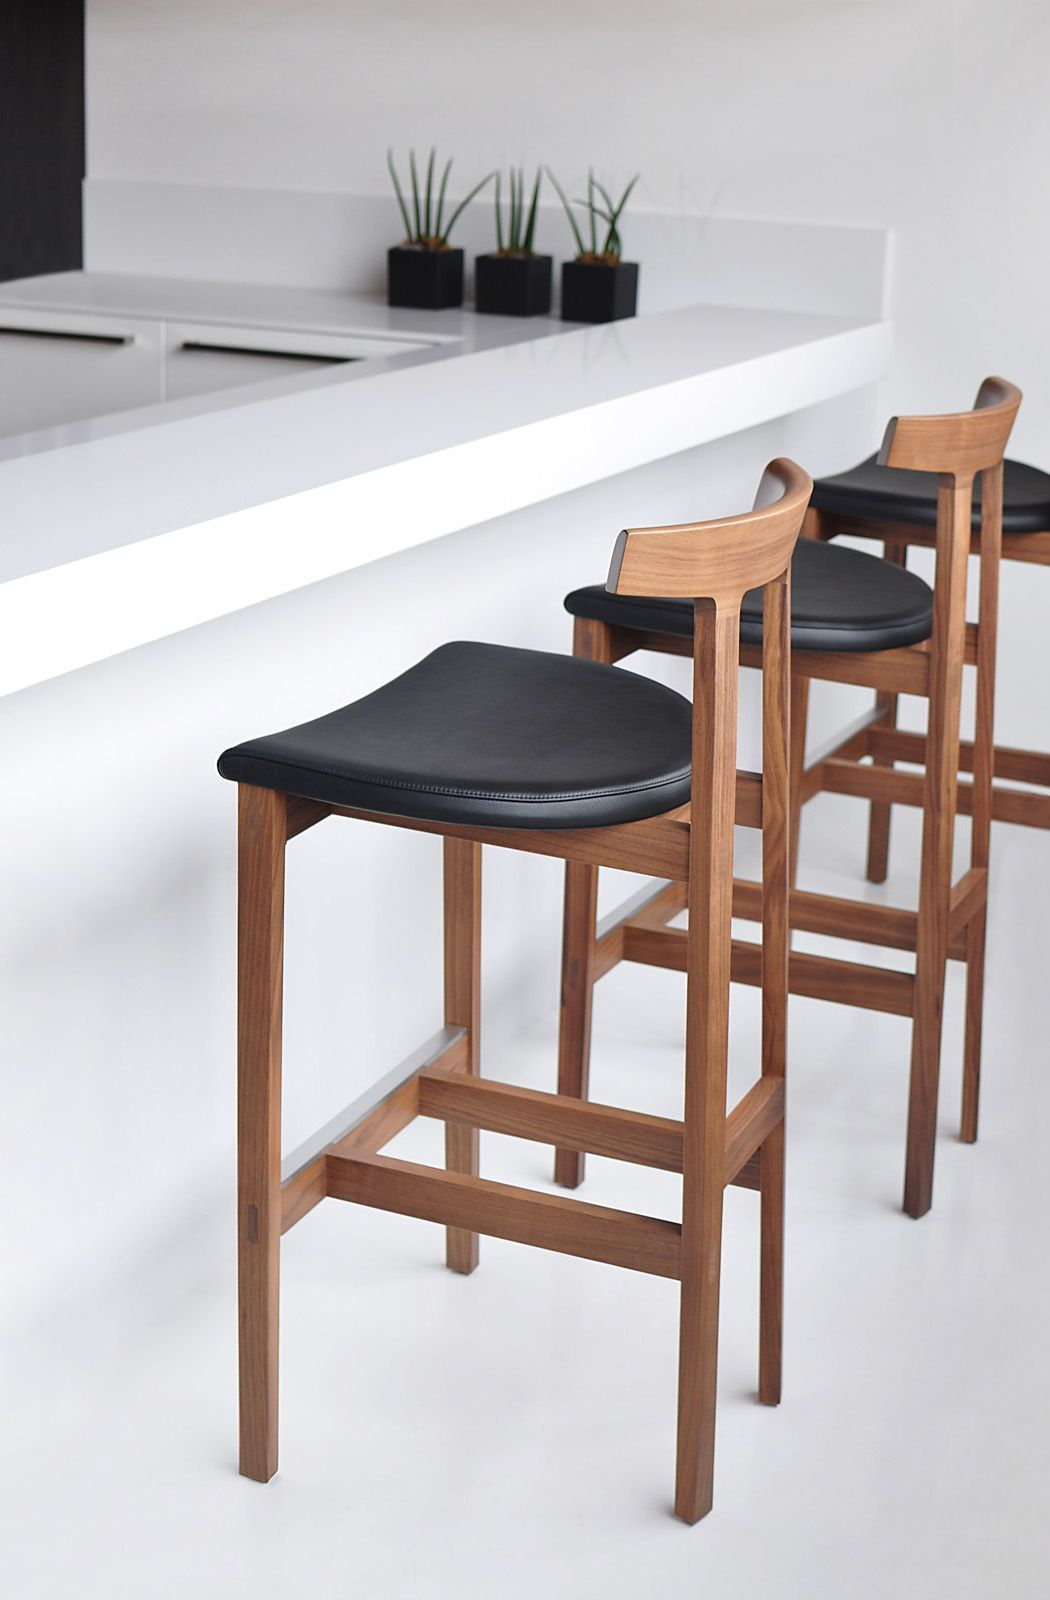 Find the best ideas and kitchen stool designs for your newly ...